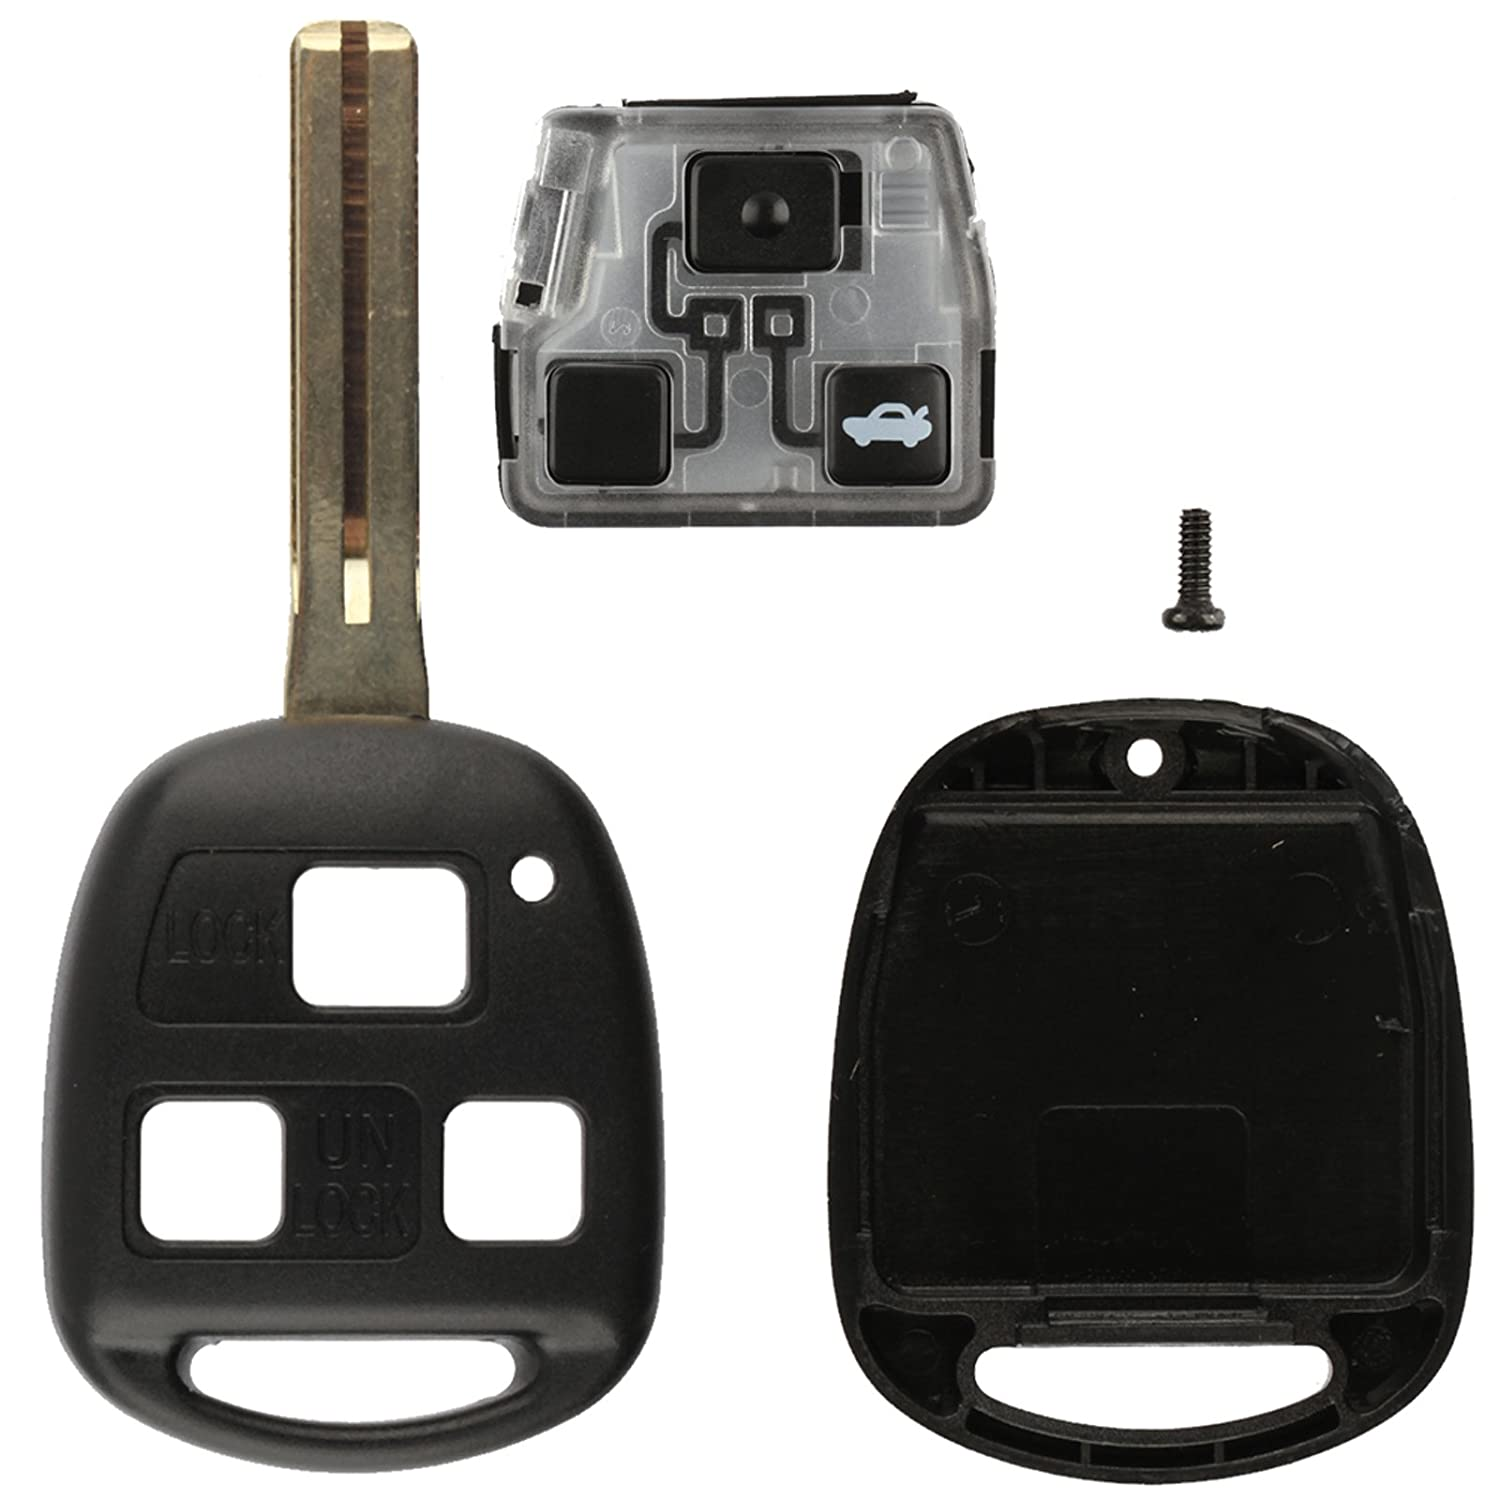 2 Pack Discount Keyless Replacement Uncut Key Shell Case and Trunk Button Pad Gut Compatible with HYQ1512V